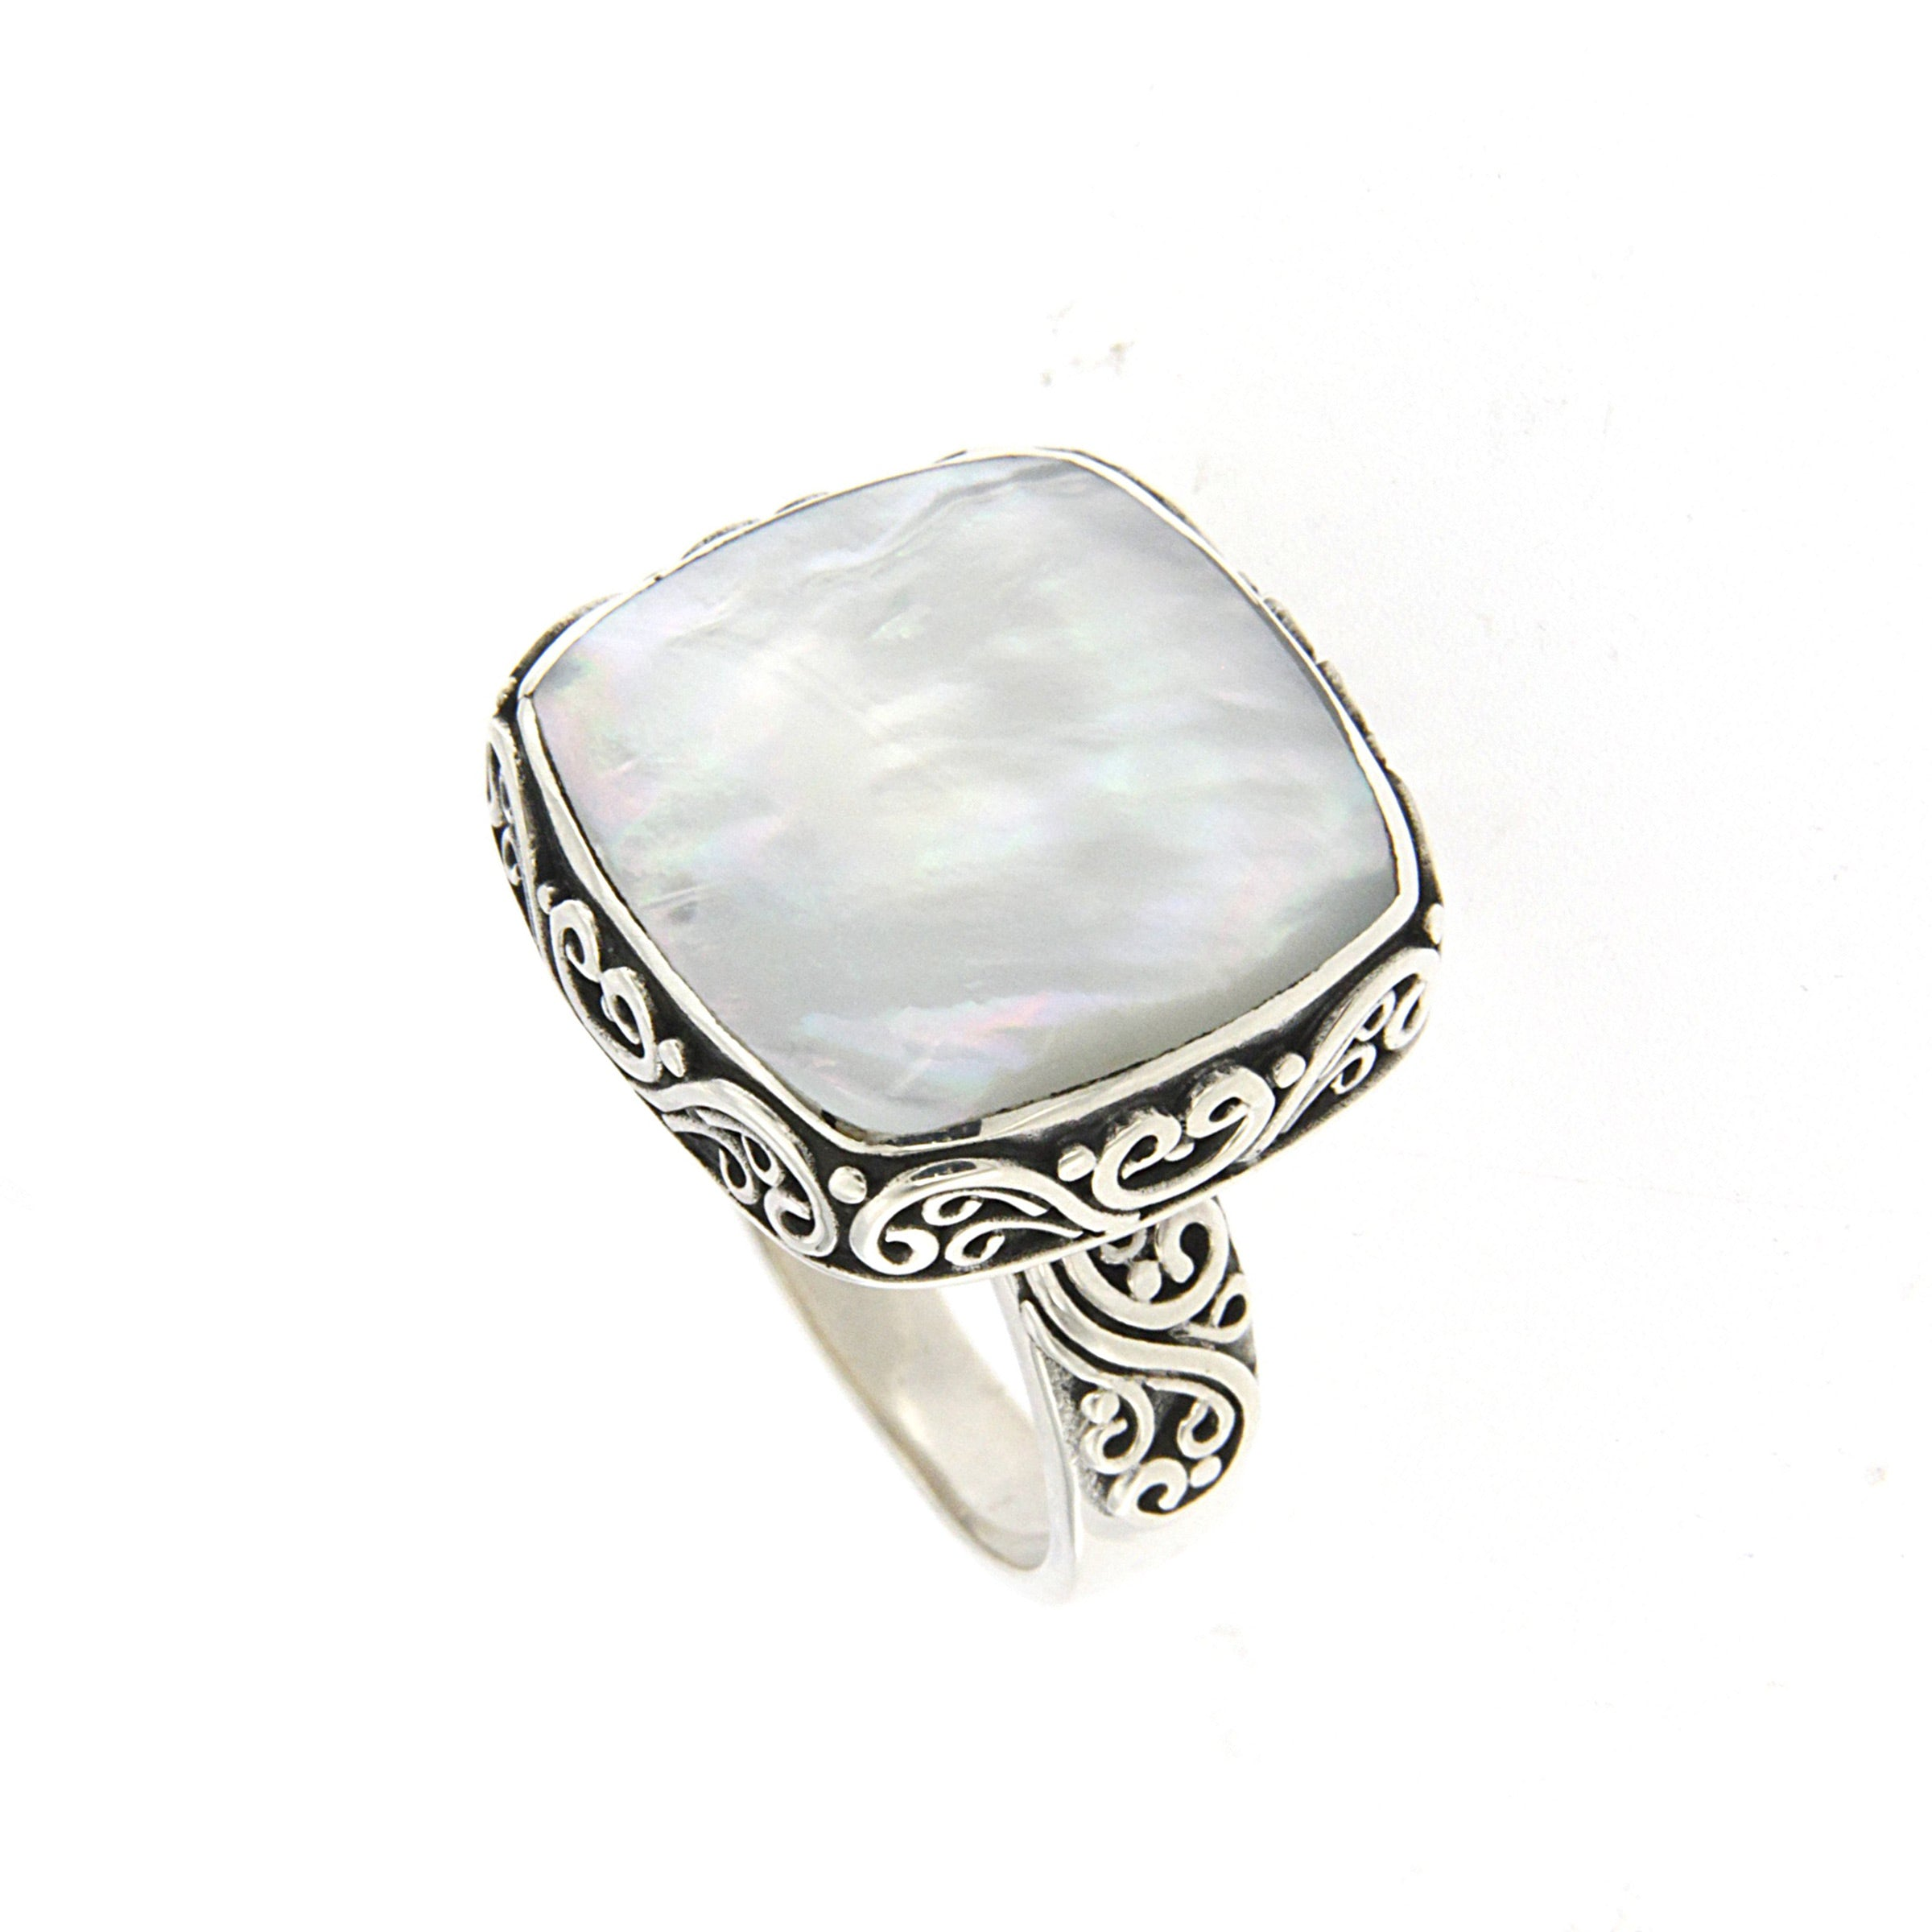 Square Balinese Design Mother of Pearl Ring, Sterling Silver